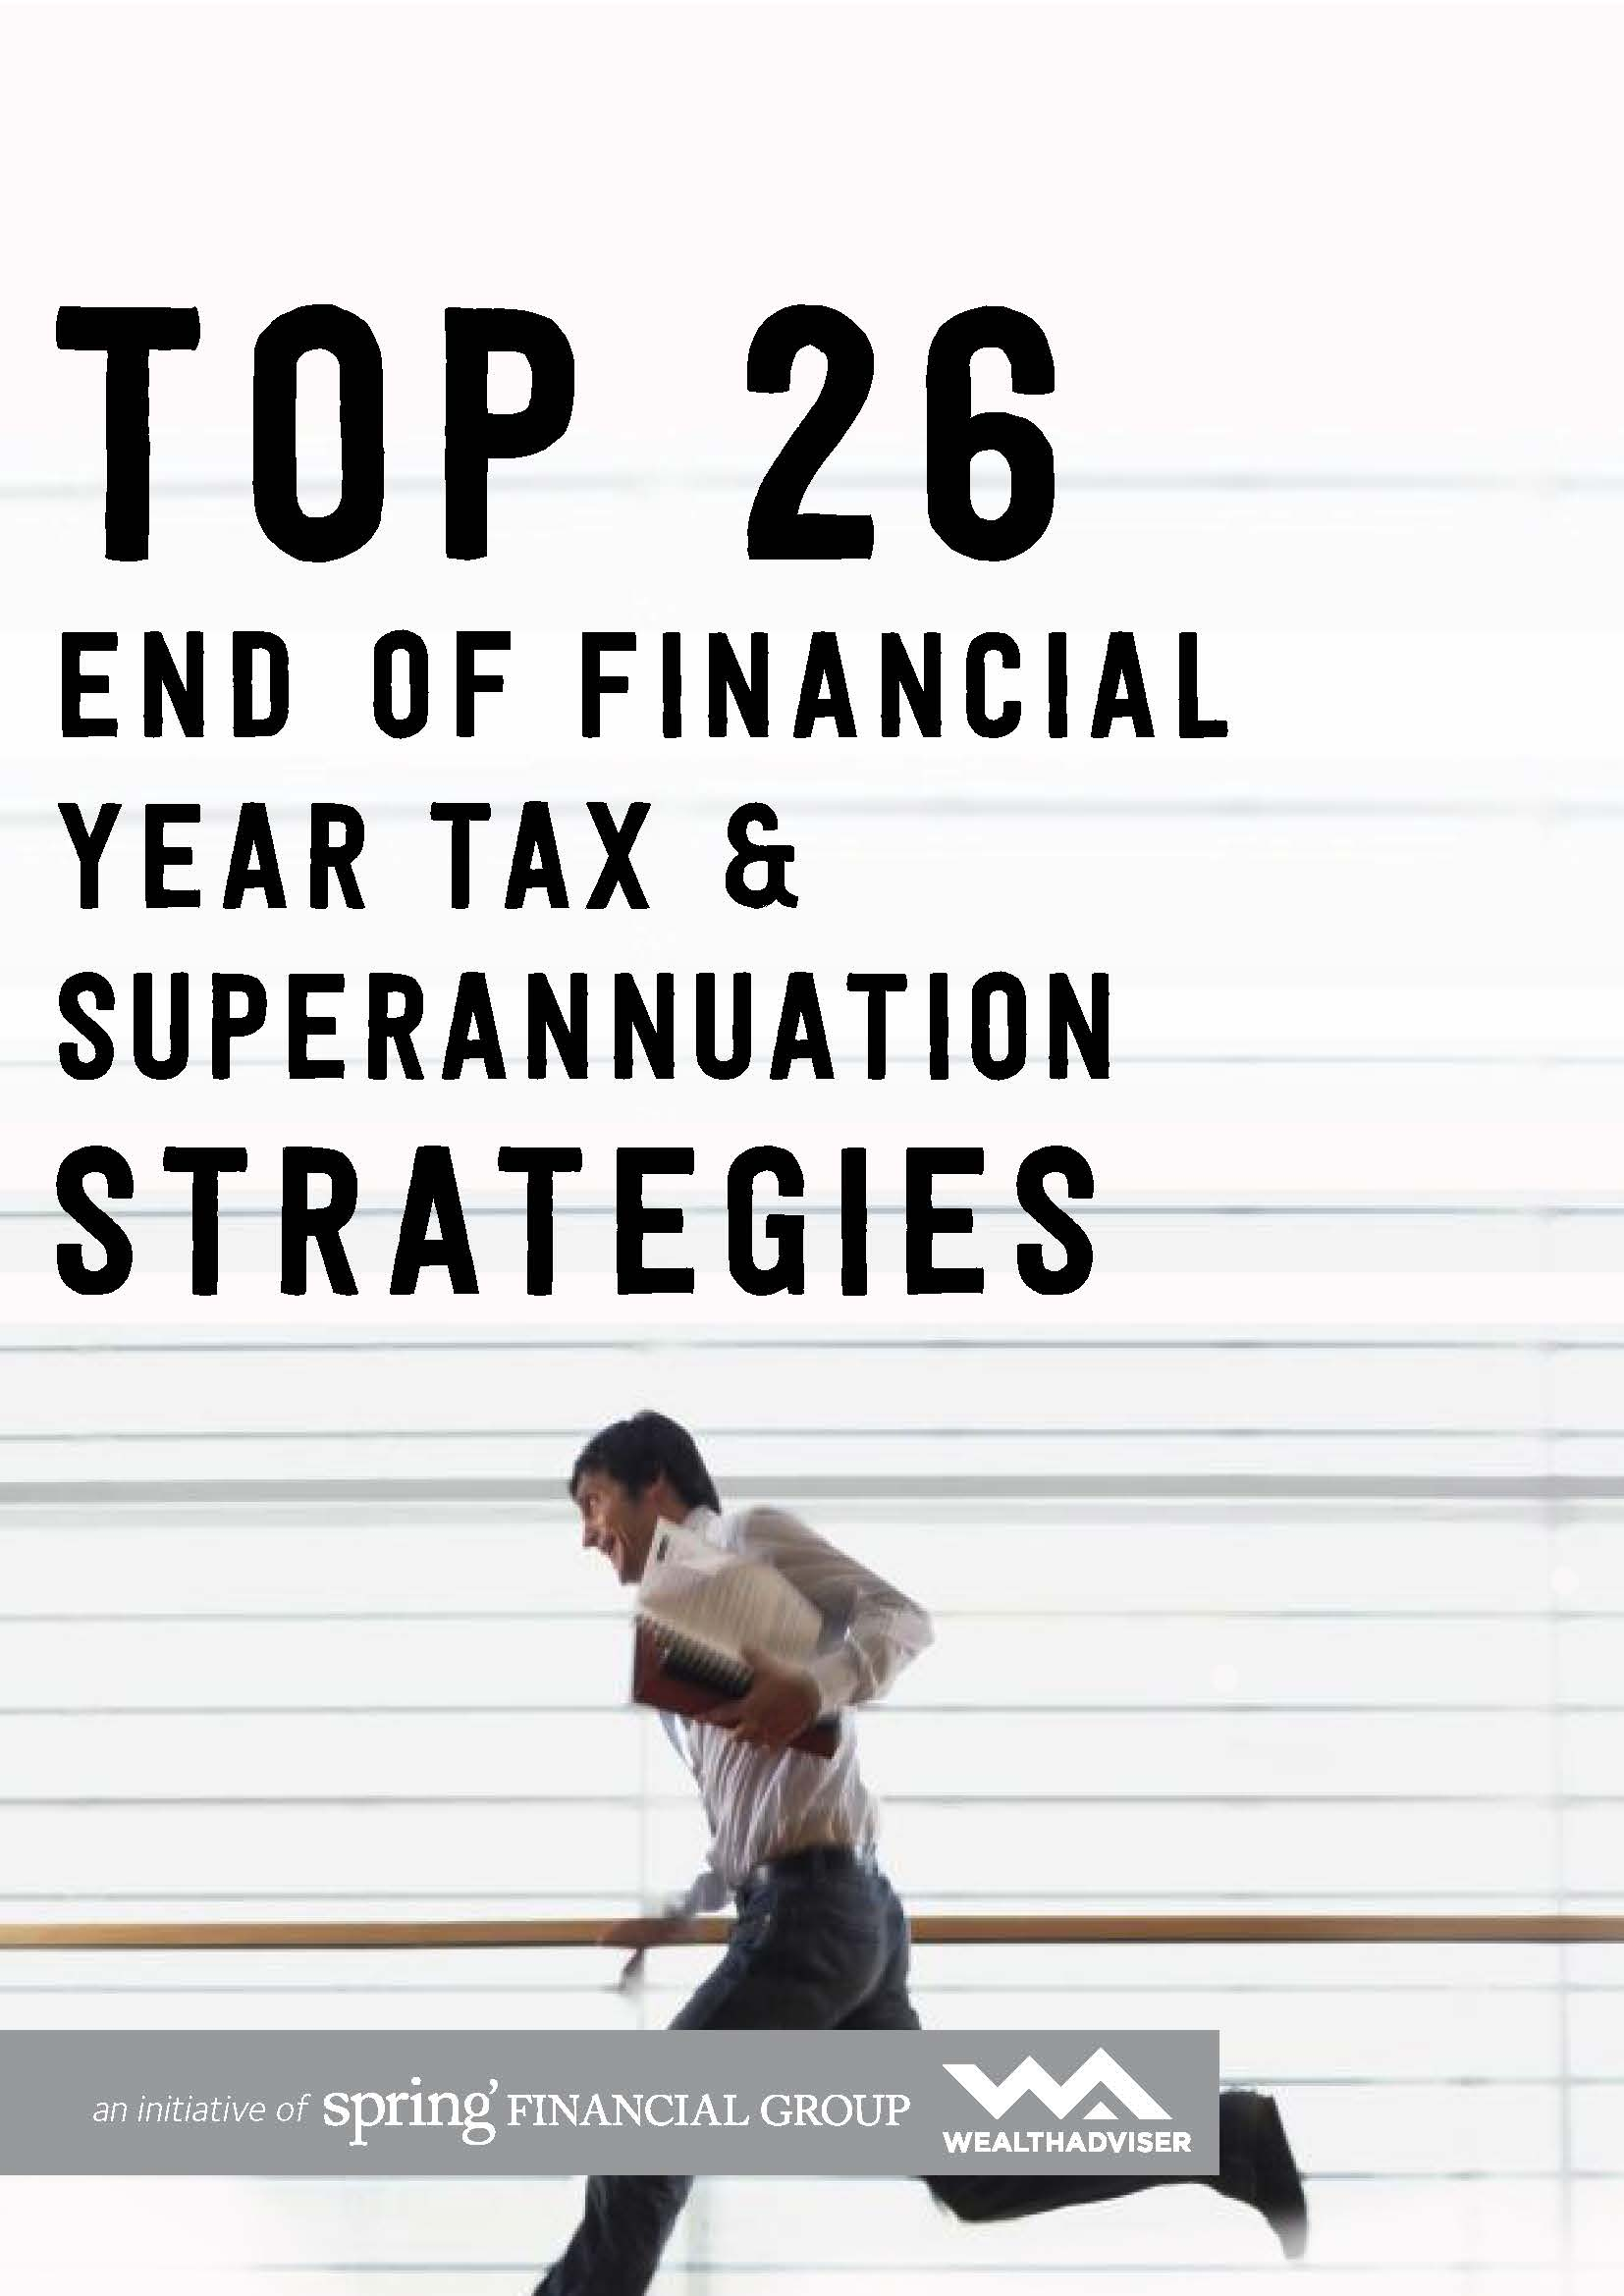 Top 26 End of Year Tax & Superannuation Strategies - eBook cover